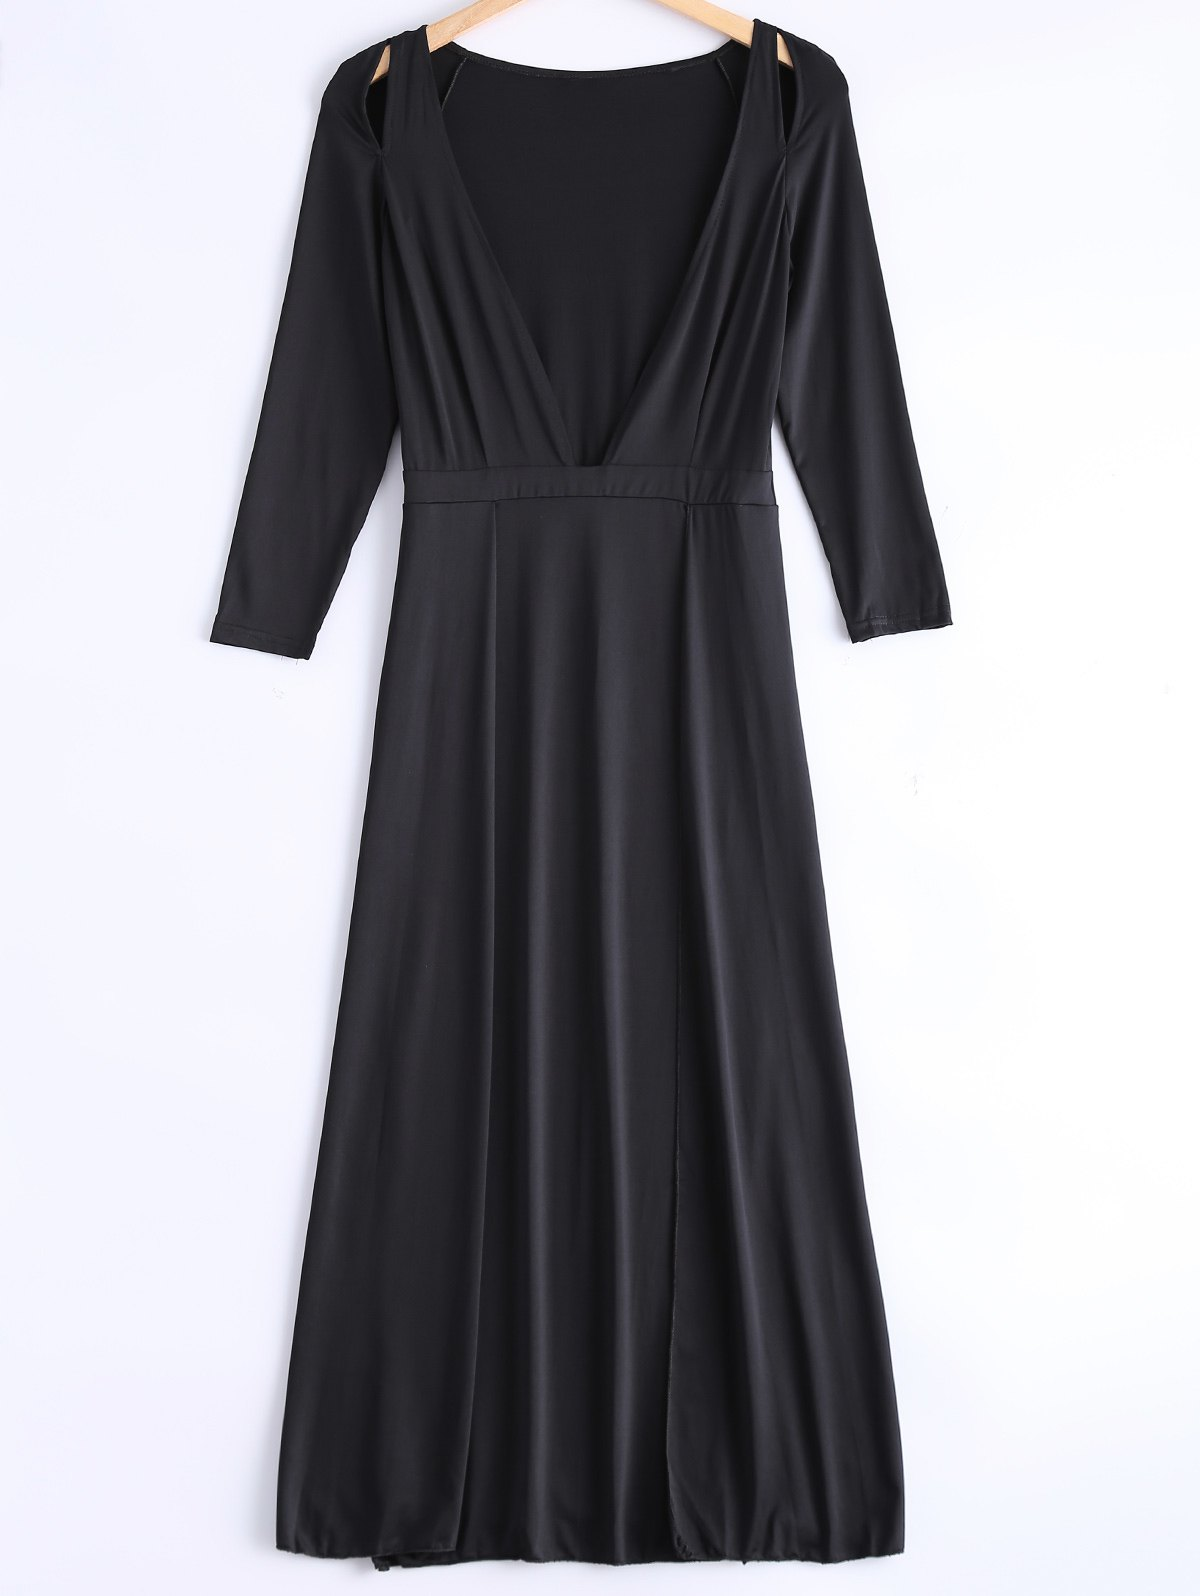 Cute Plunging Neck Long Sleeve Dress - BLACK XL